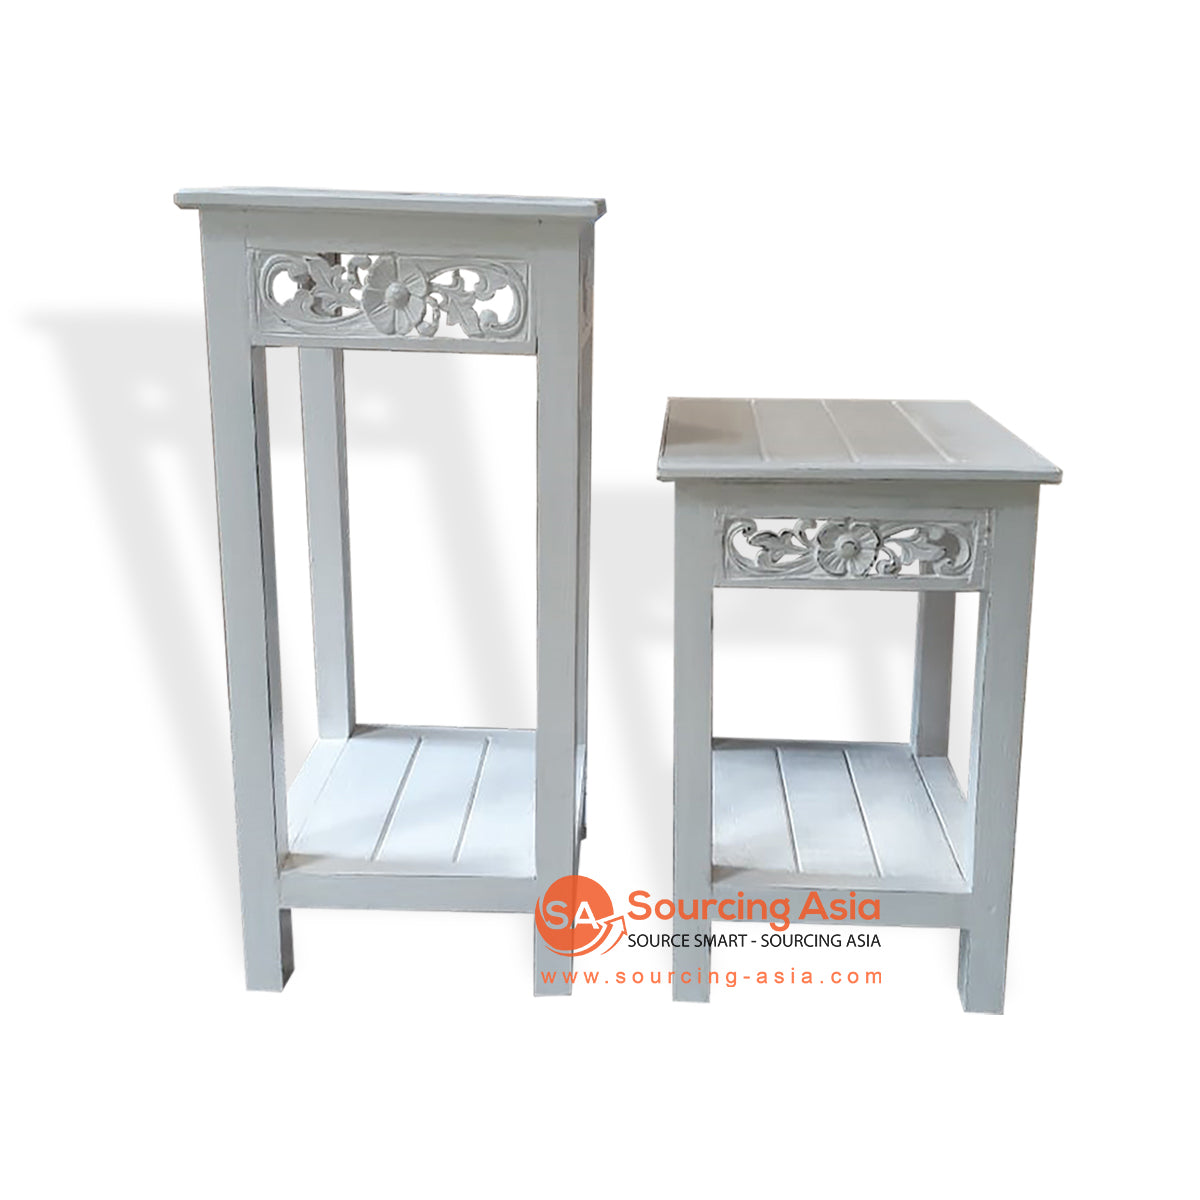 THE007-4 SET OF 2 CONSOLE DOUBLE WHITE WASH